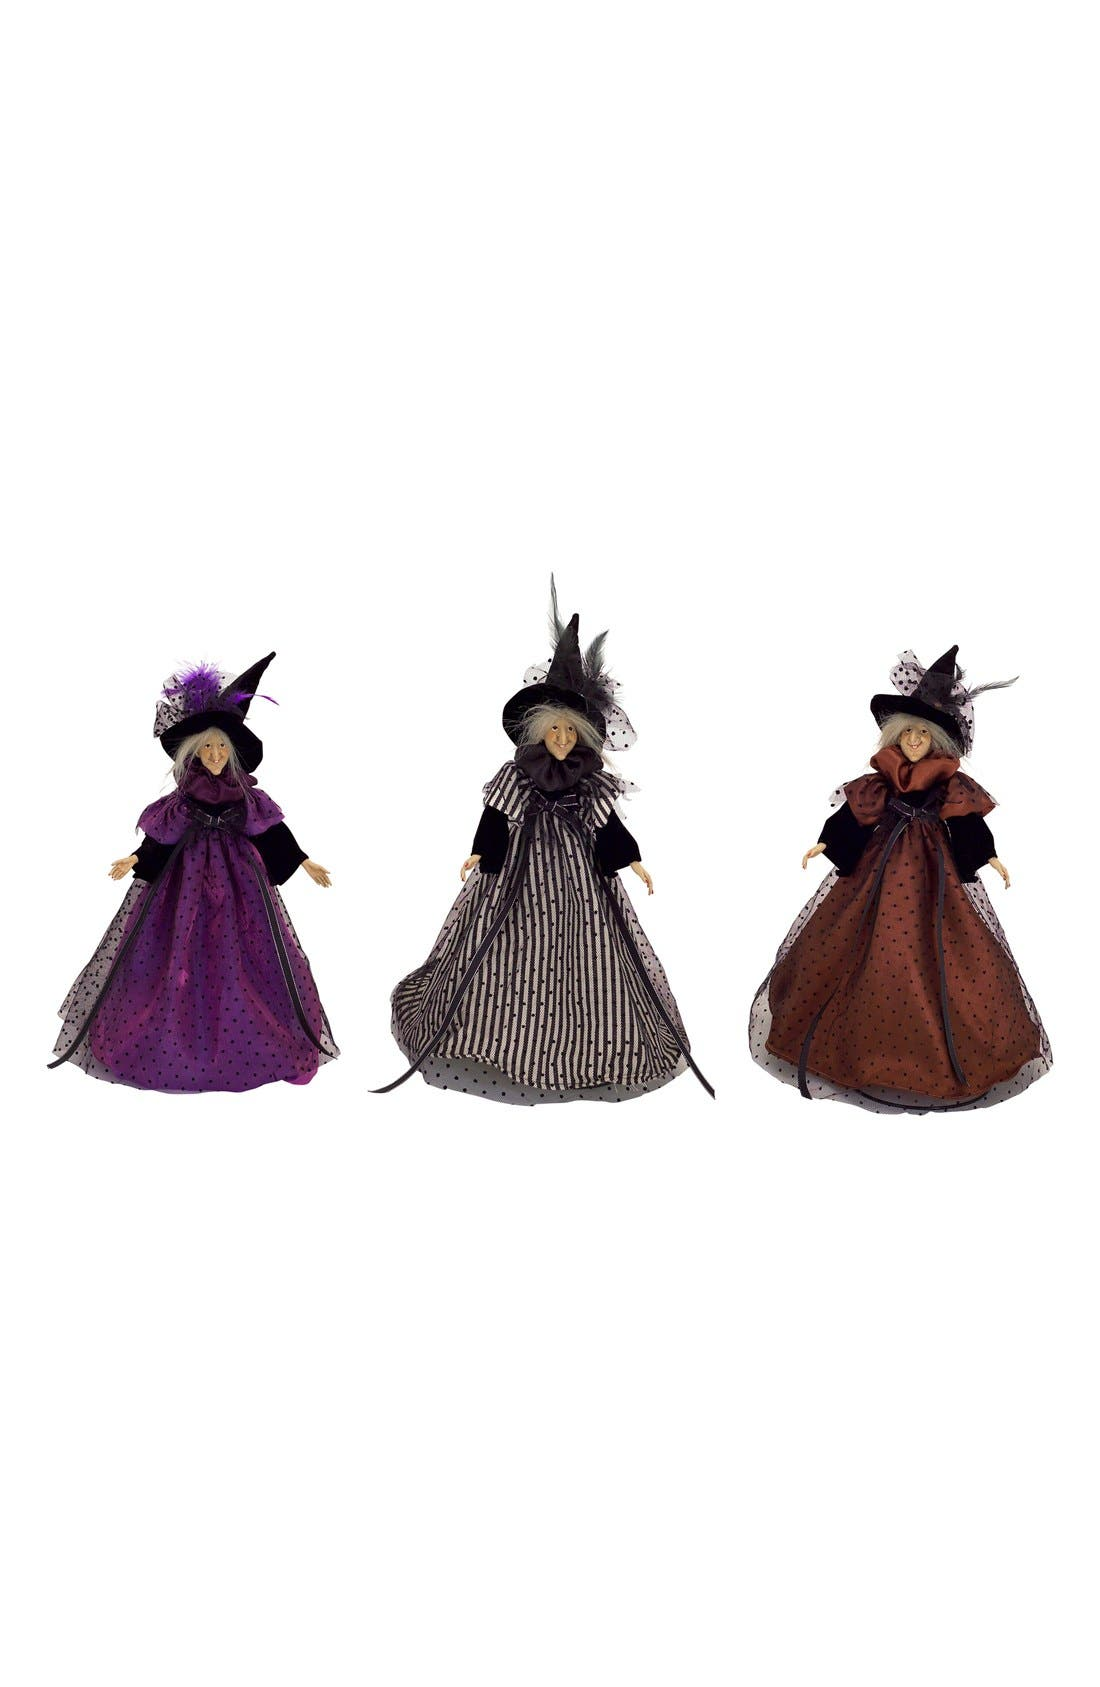 Melrose Gifts 'Witch Sister' Figurines (Set of 3)